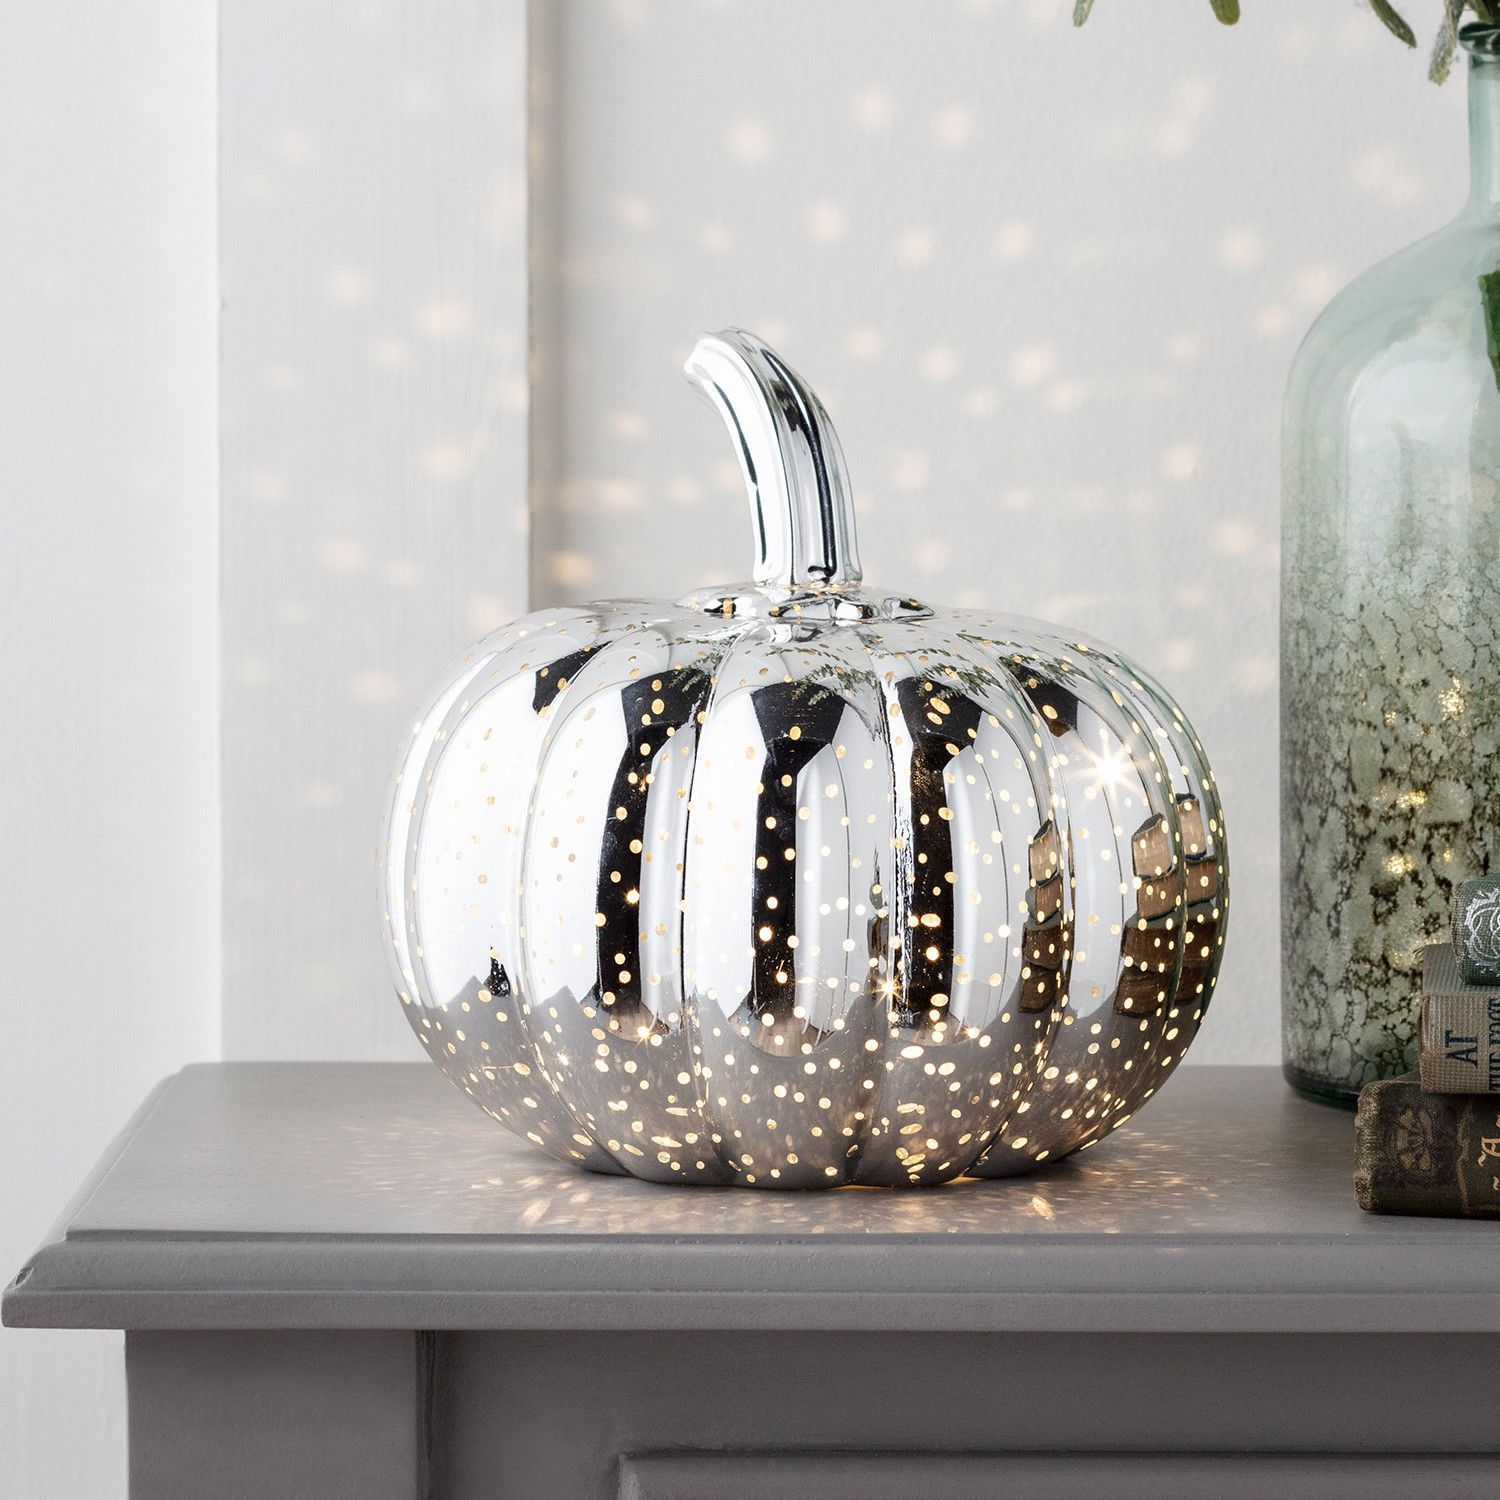 Details about Glass Pumpkin Gold/Silver (D)20cm Warm White